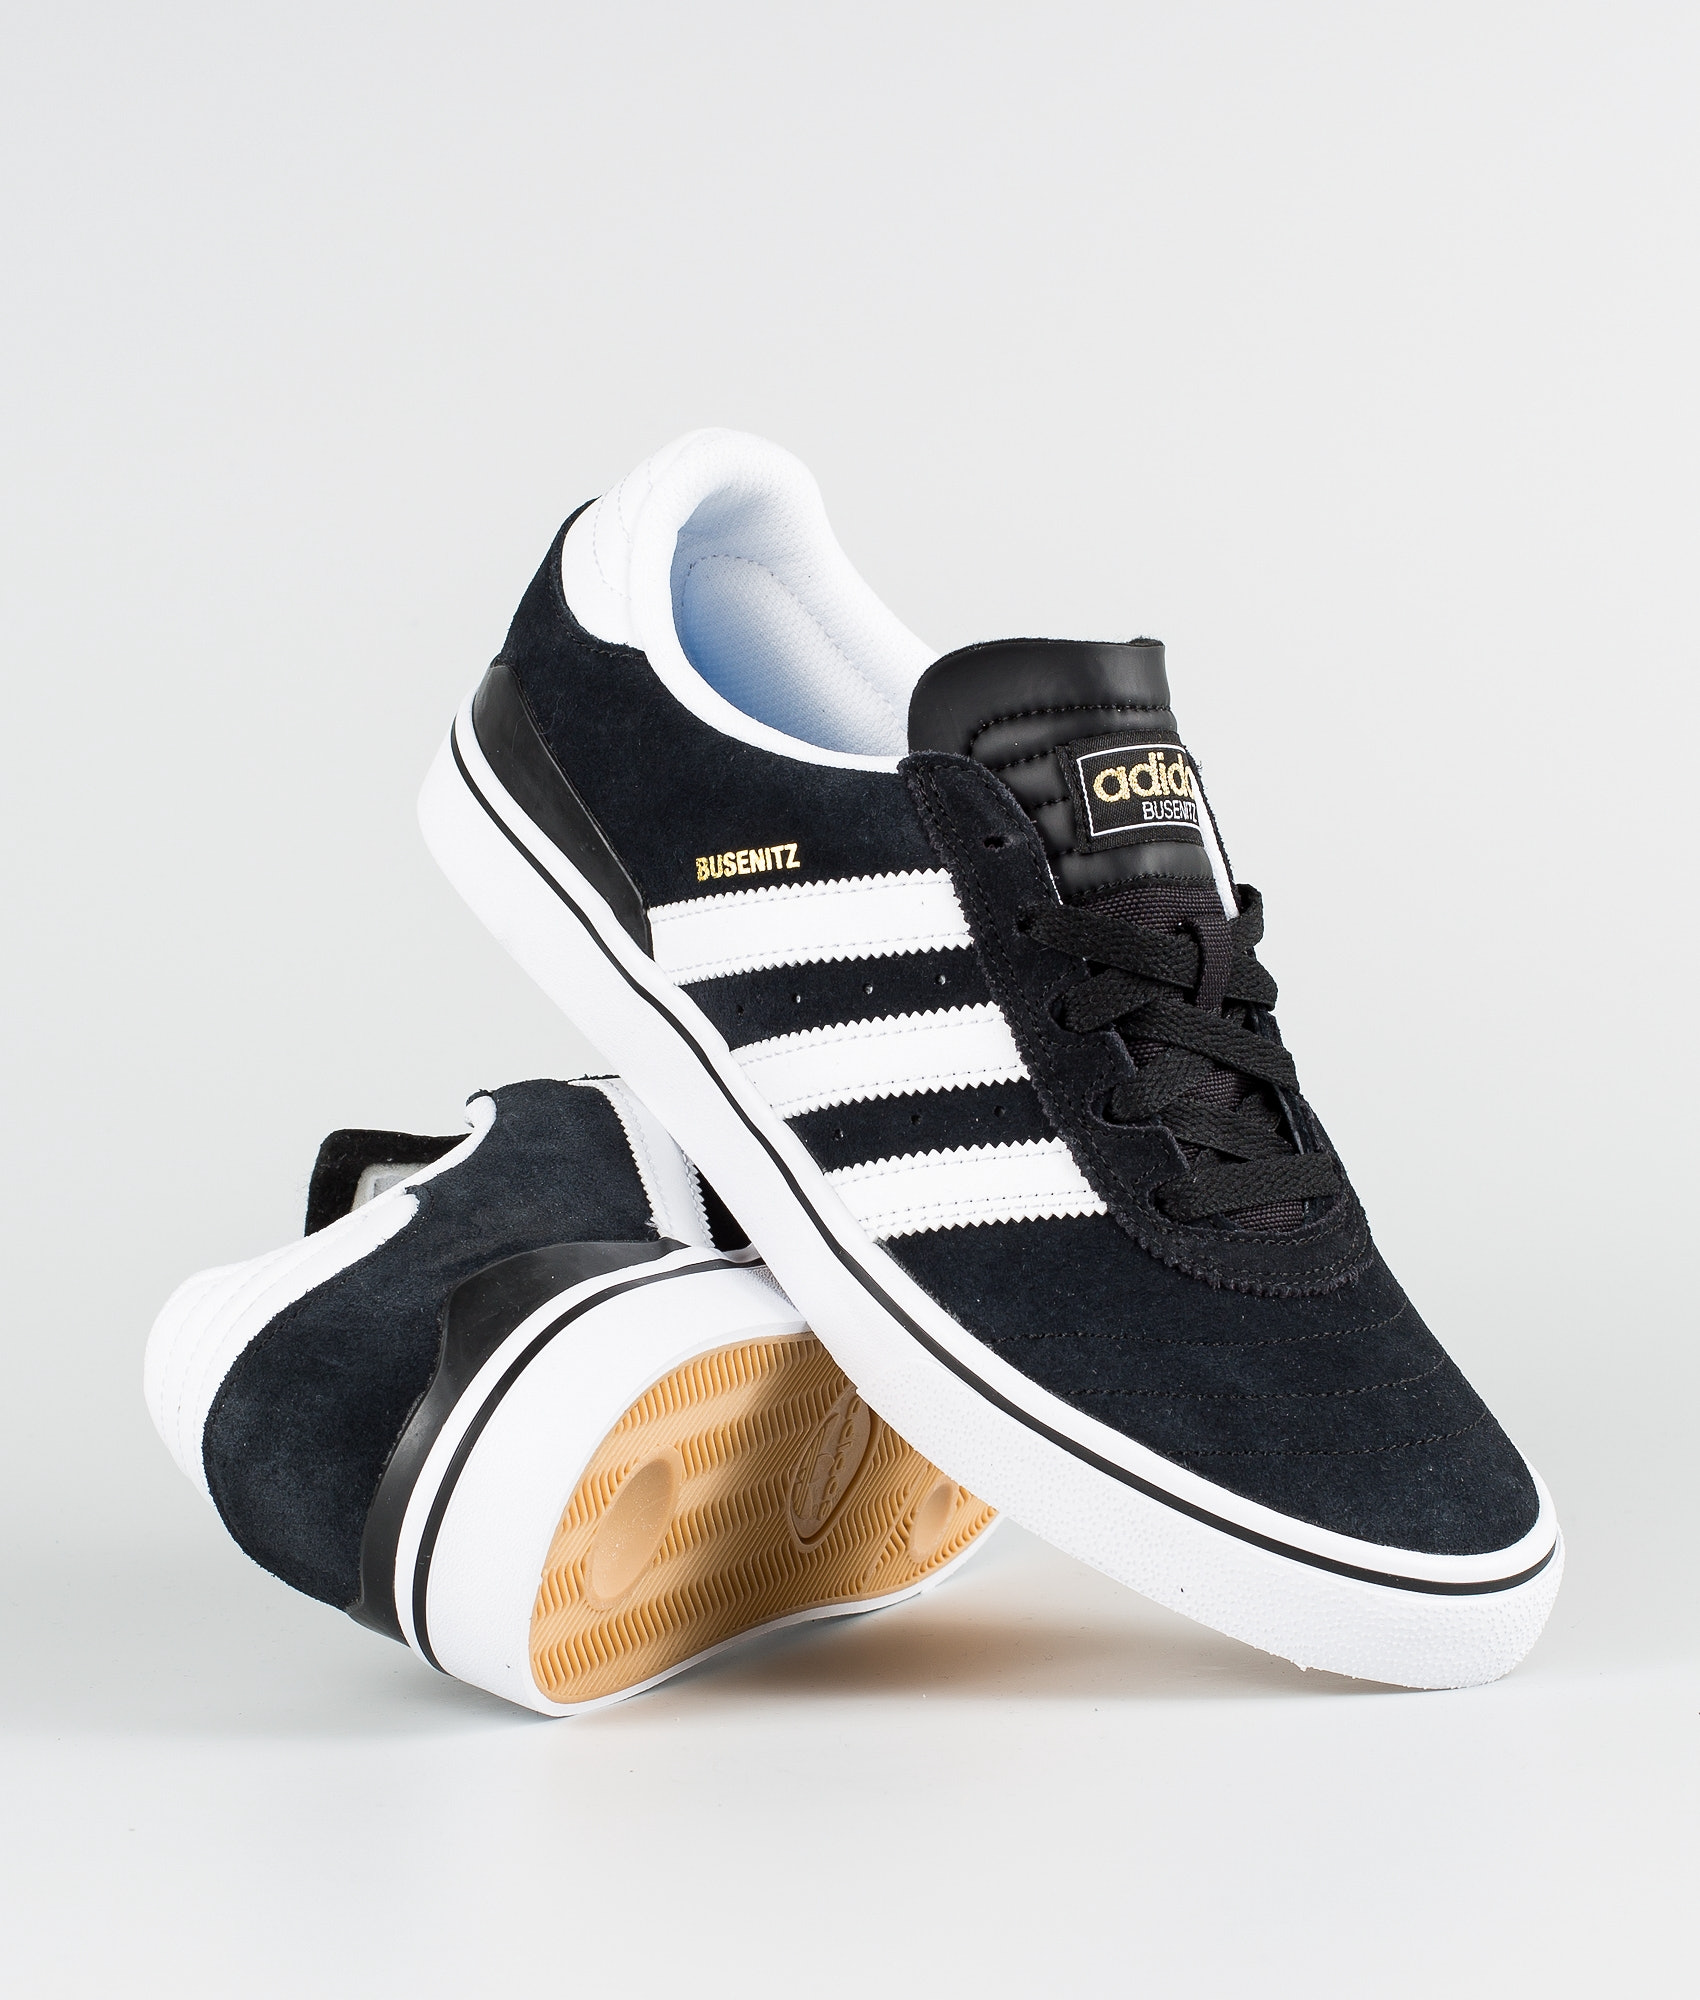 26fe310294 Adidas Skateboarding Busenitz Vulc Shoes Black1 Running White Black1 ...